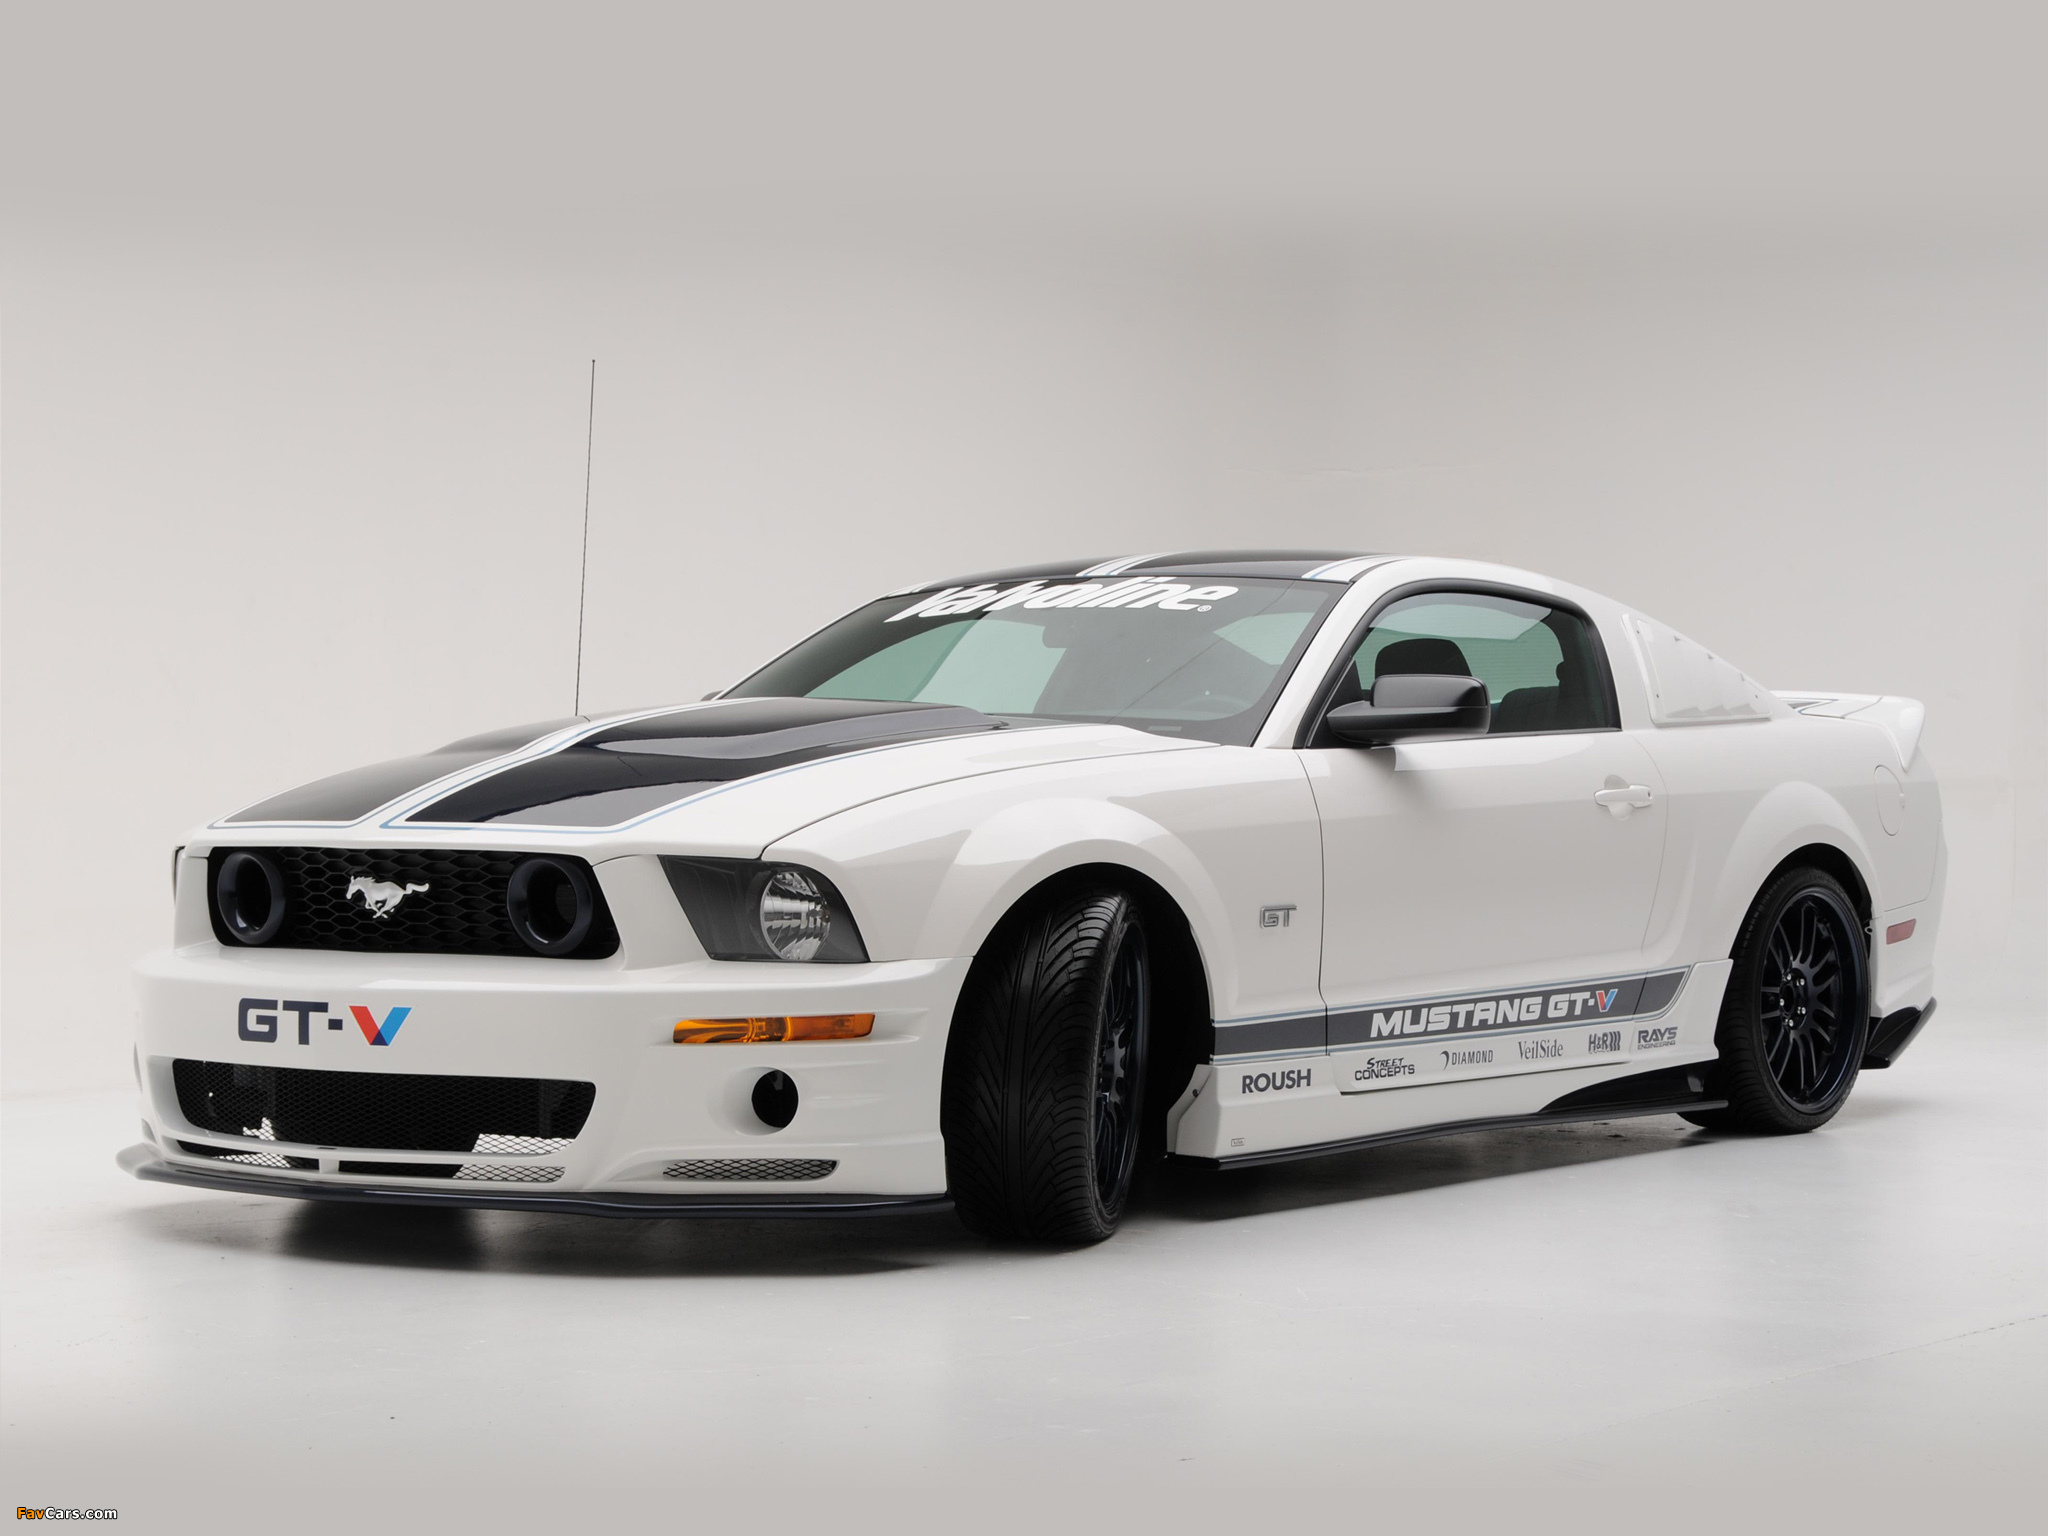 roush mustang gt v 2008 wallpapers 2048x1536. Black Bedroom Furniture Sets. Home Design Ideas